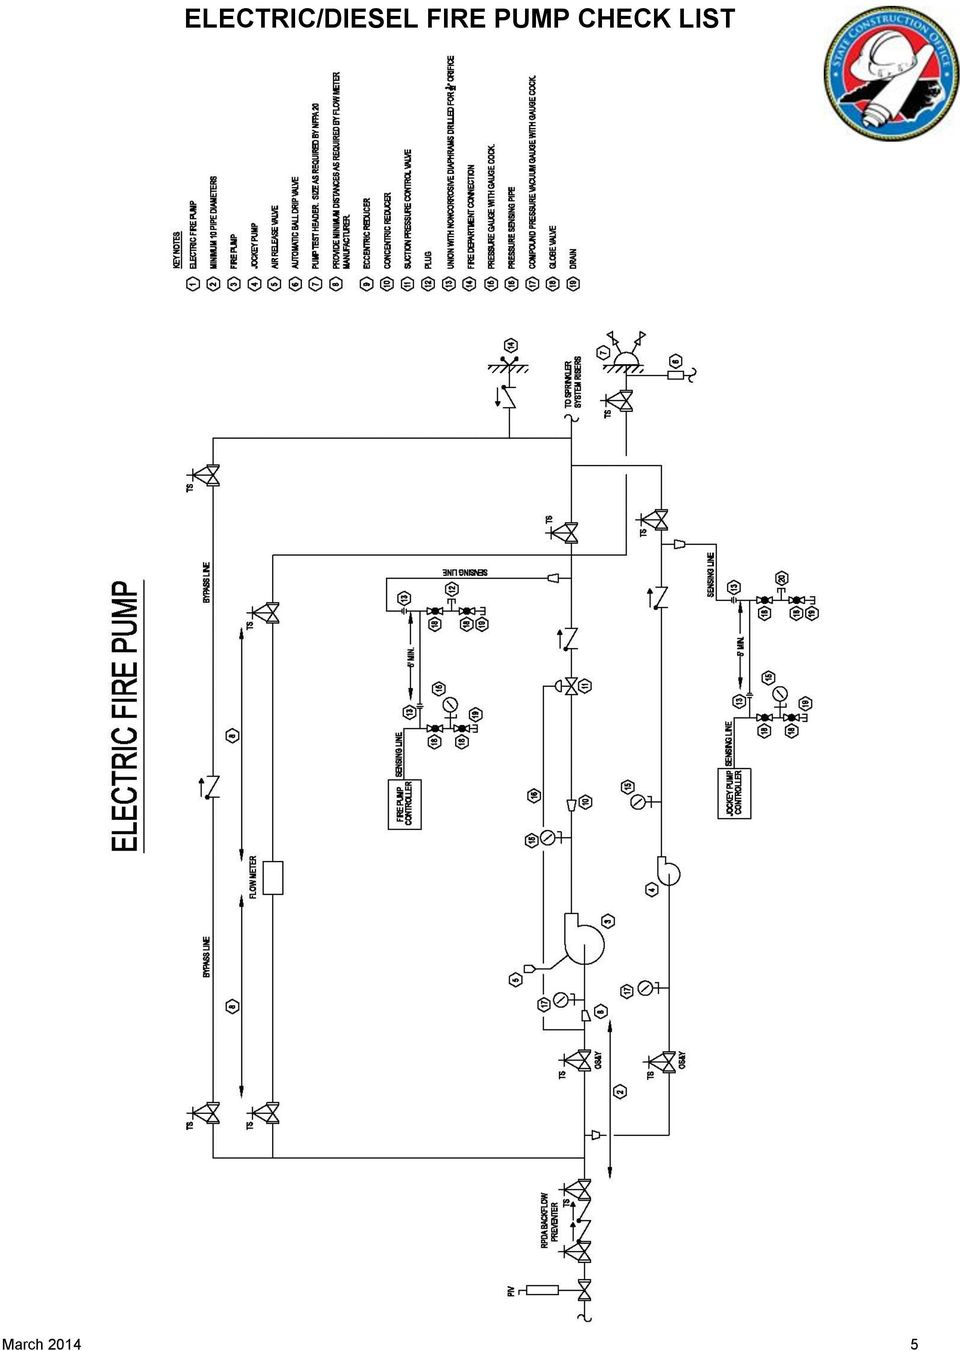 ELECTRIC/SEL FIRE PUMP CHECK LIST - PDF on fire engine pump plumbing diagram, sump pump schematic diagram, fire pump discharge pressure, fire pump panel diagram, fire pump exploded view, fire pump sprinkler system diagram, fire pump layout diagram, fire pump assembly diagram, fire pump sensing line diagram, fire pump wiring diagram, hale fire pump diagram, typical fire pump diagram, vacuum pump schematic diagram, oil pump schematic diagram, fire pump motor diagram, fire pump components diagram, water pump schematic diagram, fire pump control panel, fire pump cover, fire pump block diagram,